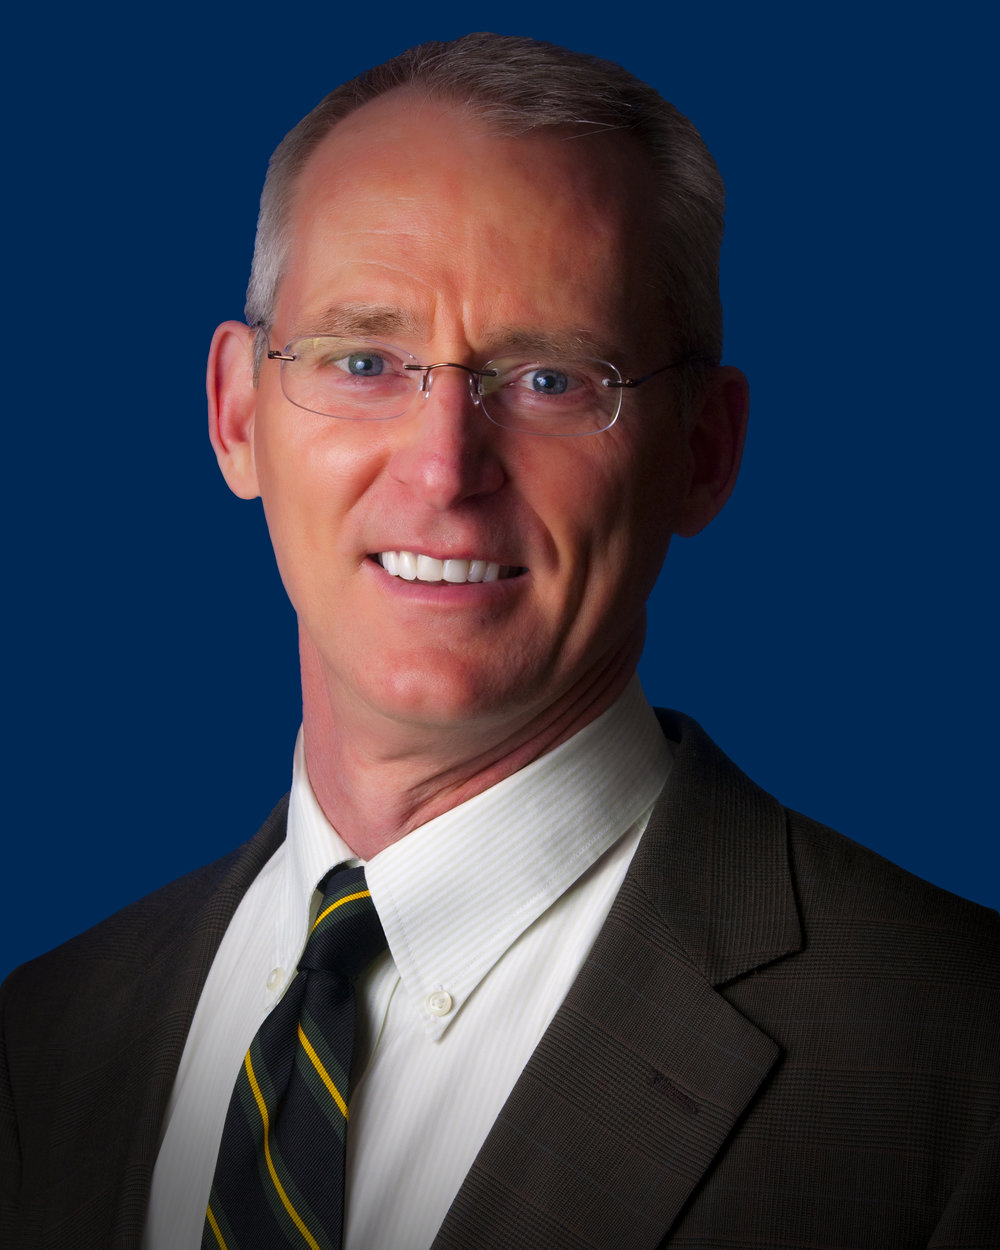 "Bob Inglis, RepublicEN - Bob Inglis was elected to the U.S. Congress in 1992, having never run for office before. He represented Greenville-Spartanburg, South Carolina, from 1993-1998, unsuccessfully challenged U.S. Senator Fritz Hollings in 1998, and then returned to the practice of commercial real estate law in Greenville, S.C. In 2004, he was re-elected to Congress and served until losing re-election in the South Carolina Republican primary of 2010.In 2011, Inglis went full-time into promoting free enterprise action on climate change and launched the Energy and Enterprise Initiative (""E&EI"") at George Mason University in July 2012. E&EI is a 501(c)(3), tax-exempt, educational outreach that lives to demonstrate the power of accountable free enterprise. E&EI believes that climate change can be solved by eliminating all subsidies, including the implicit subsidy of the lack of accountability for emissions. By creating a level playing field in which all costs are transparently ""in"" on all fuels, E&EI believes that the free enterprise system will deliver innovation faster than government regulations could ever imagine.E&EI supports an online community of energy optimists and climate realists at republicEn.org. You can say you're ""En"" on free enterprise solutions to climate change at republicEn.org."